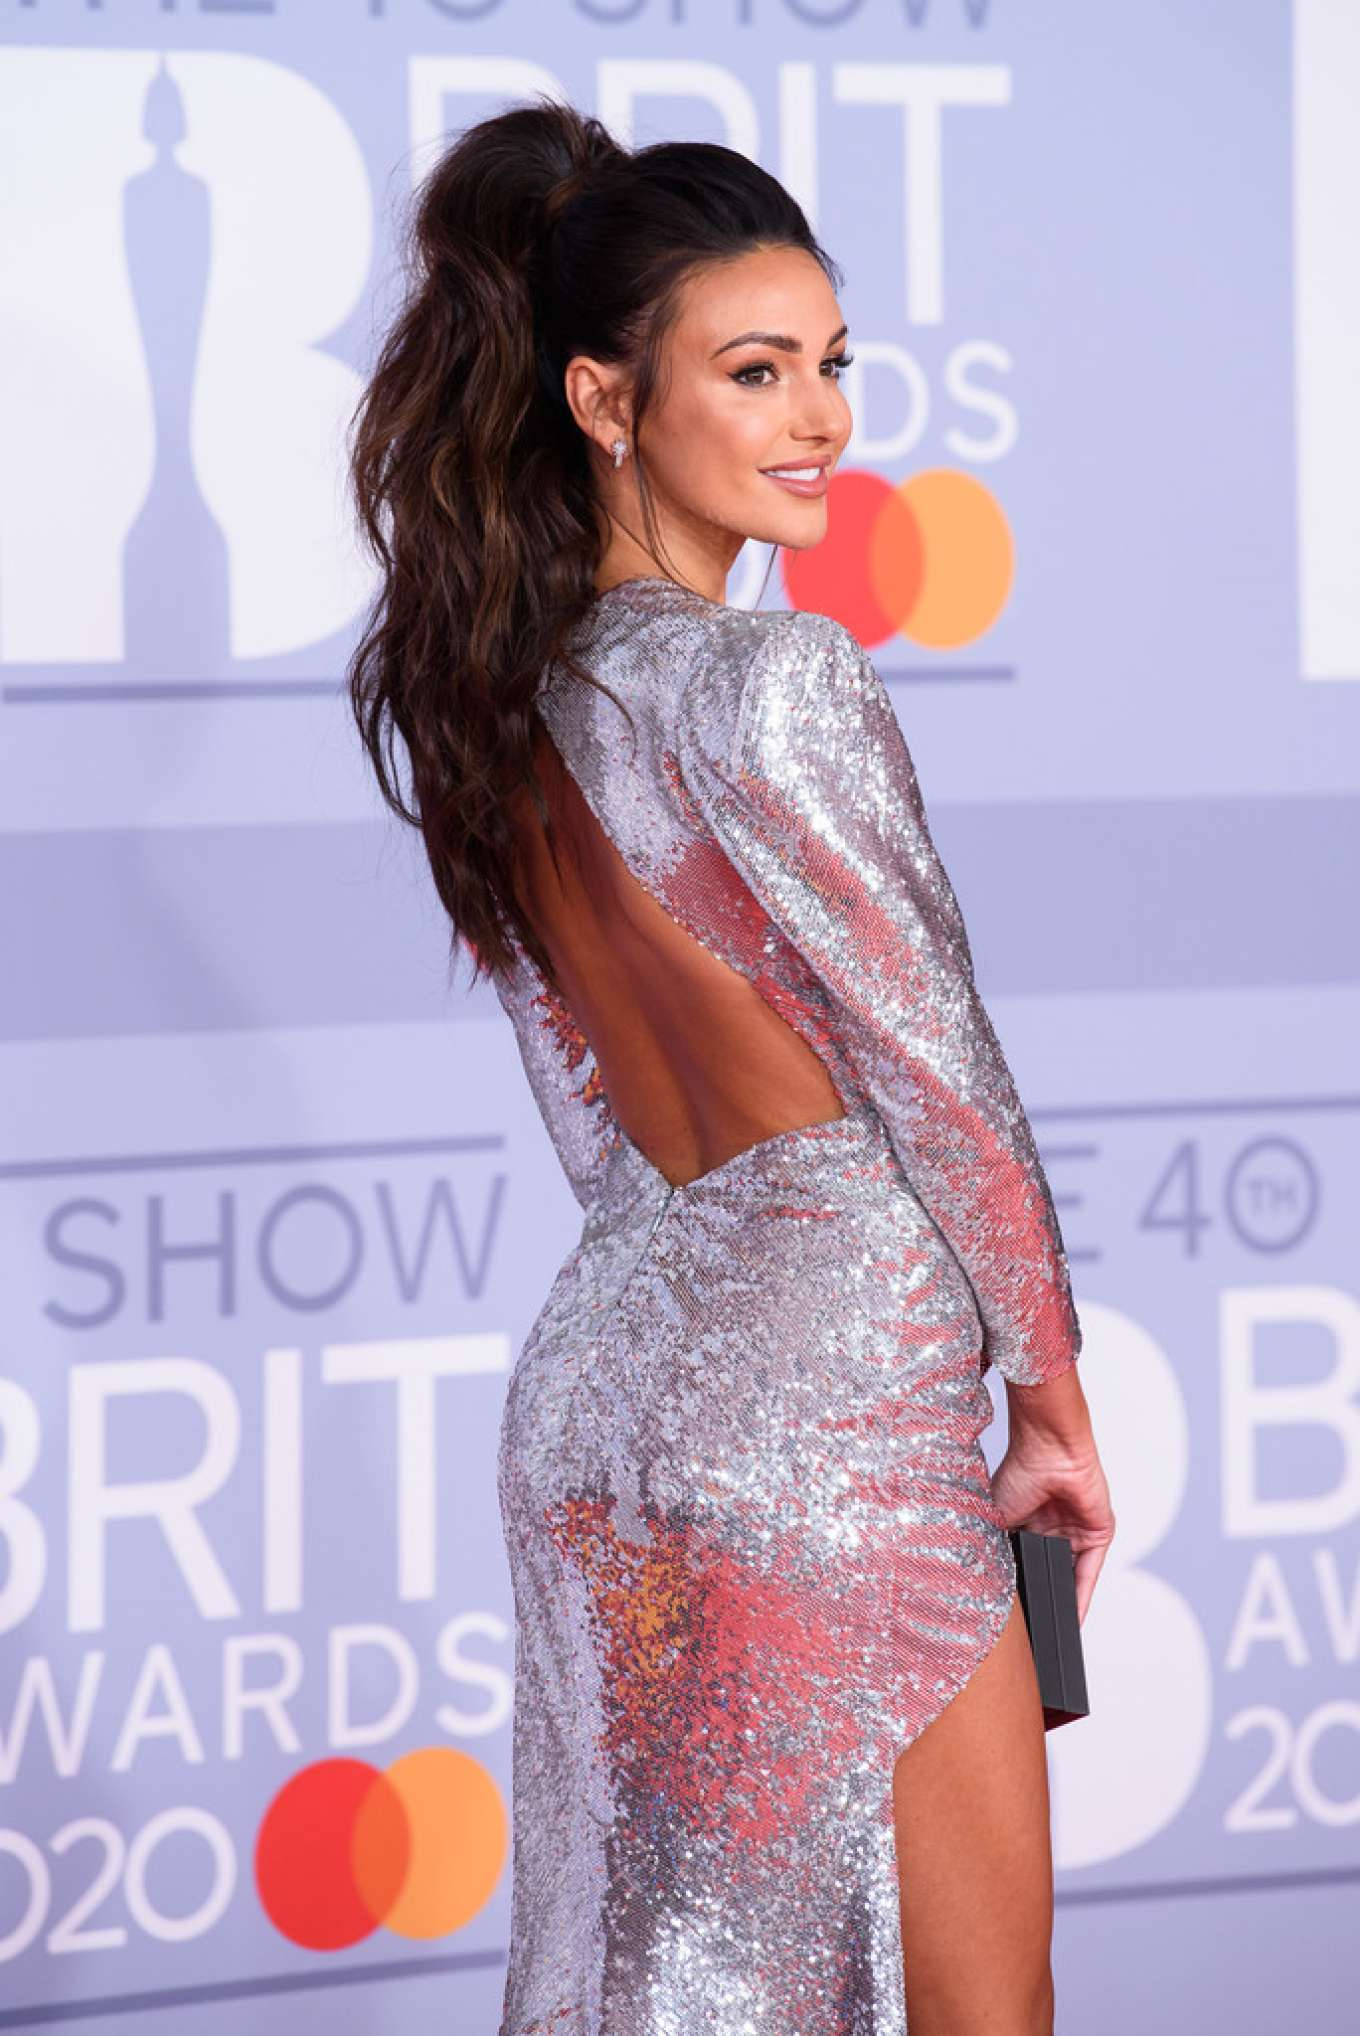 Michelle Keegan - Red carpet at BRIT Awards at O2 Arena in London